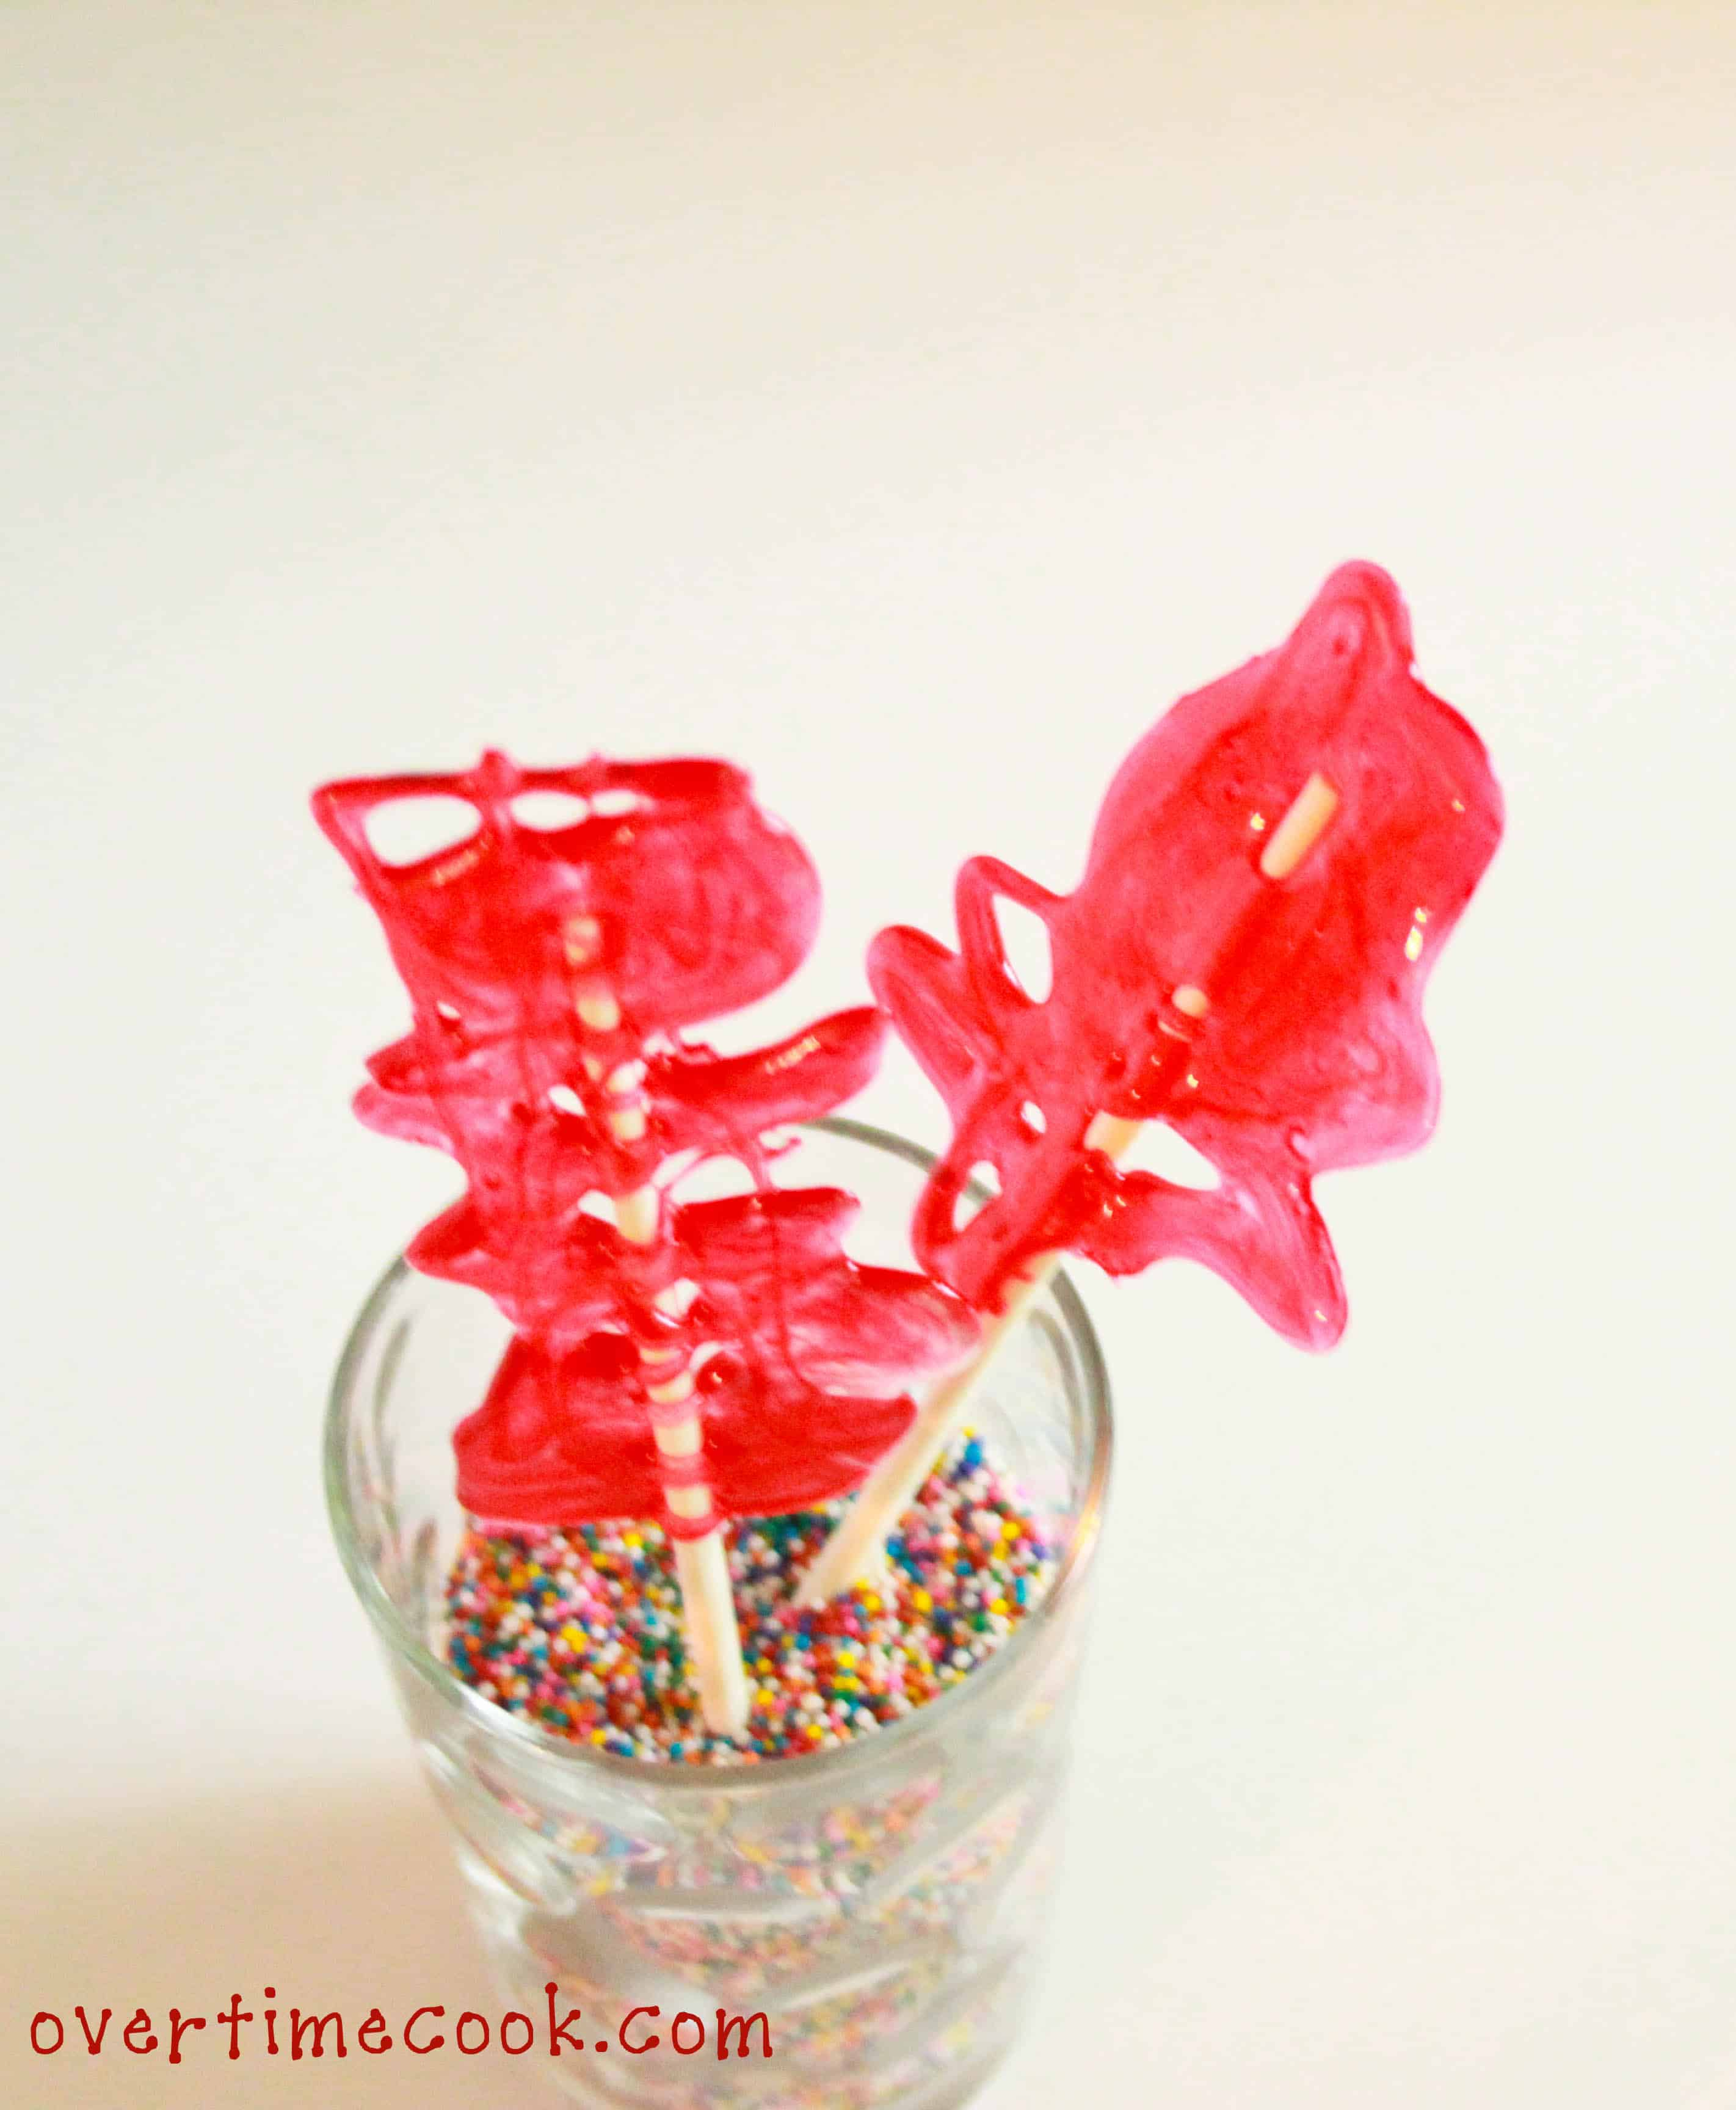 Fun drizzled lollipops